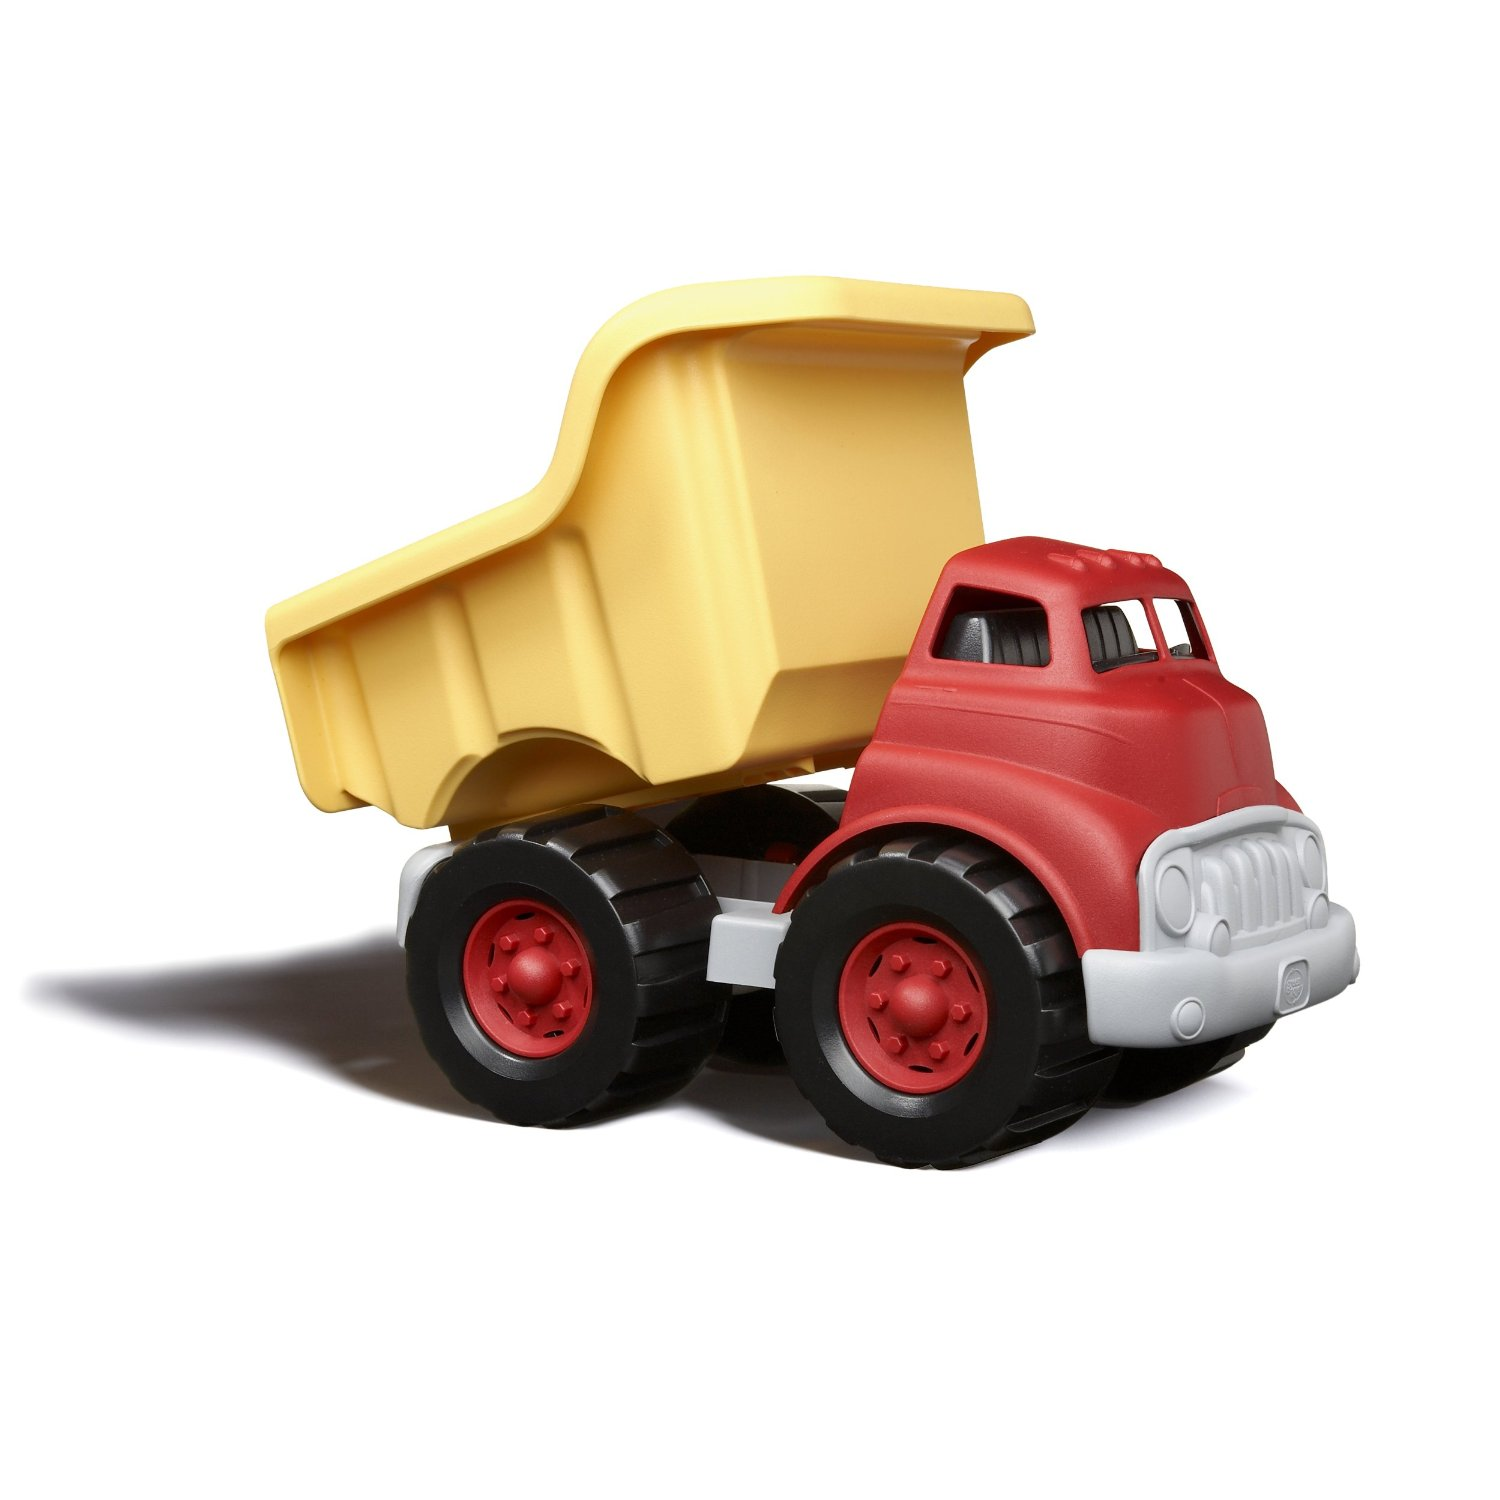 Toy Model Trucks : The thinking mom motherhood by bay